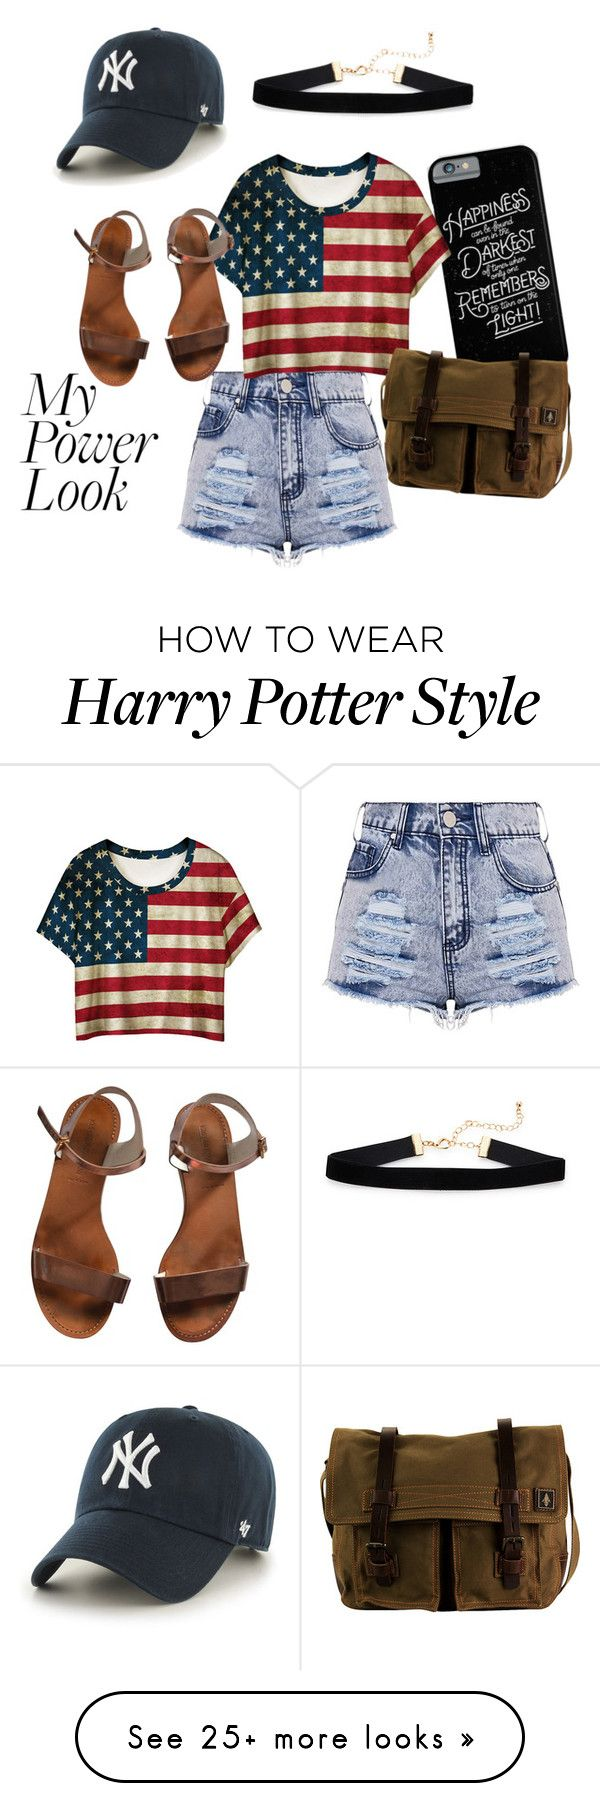 """""""My Power Look"""" by sknear on Polyvore featuring WithChic, Emporio Armani, '47 Brand and DamnDog"""